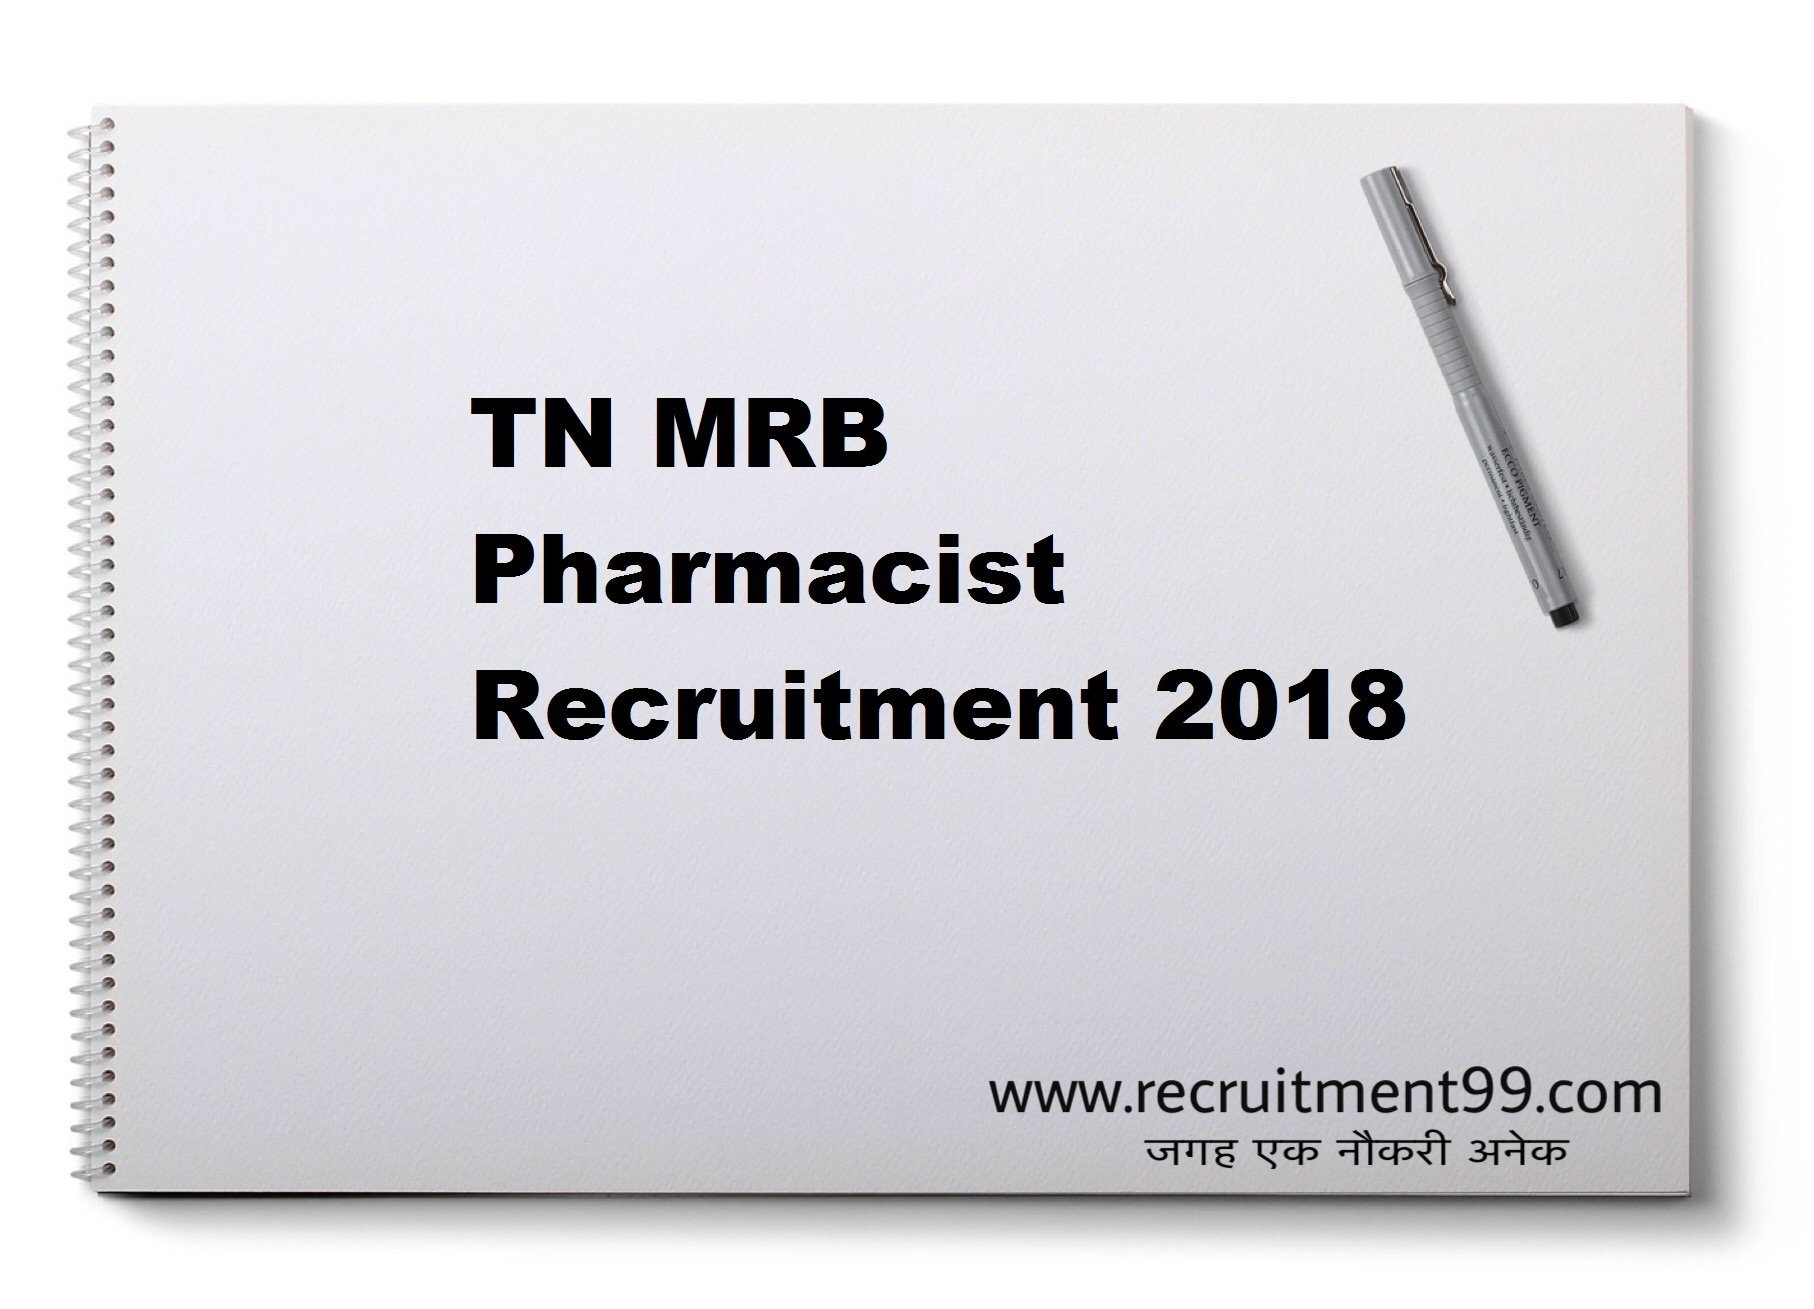 TN MRB Pharmacist Recruitment Hall Ticket Result 2018